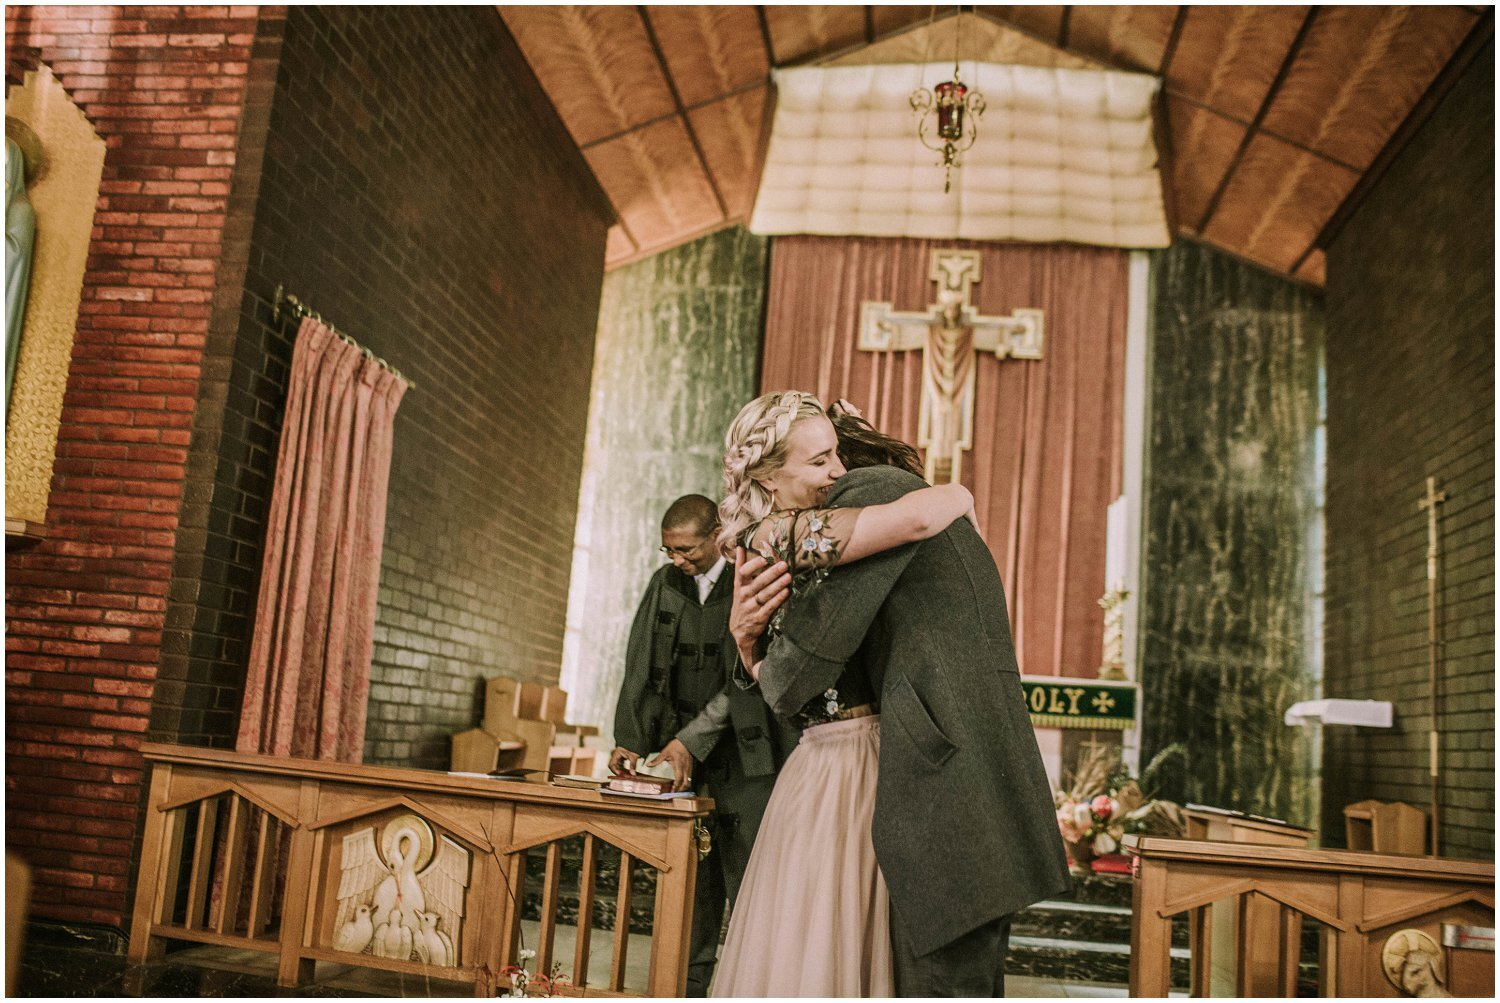 Top Wedding Photographer Cape Town South Africa Artistic Creative Documentary Wedding Photography Rue Kruger_1488.jpg